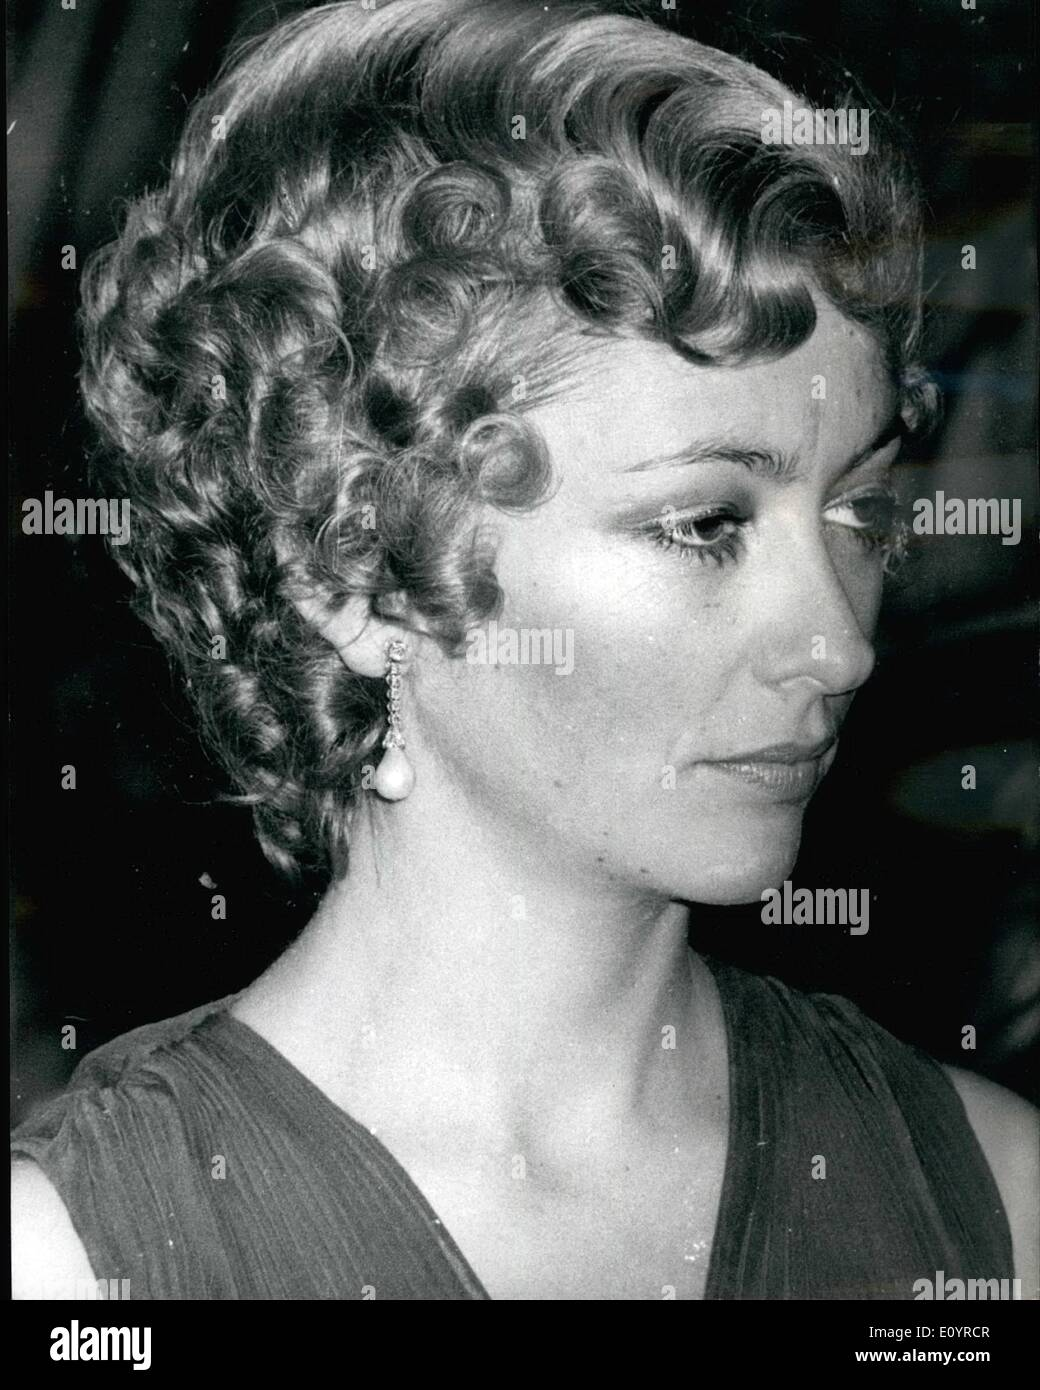 Apr 04 1971 New Hairstyle For Princess Paola Photo Shows Stock